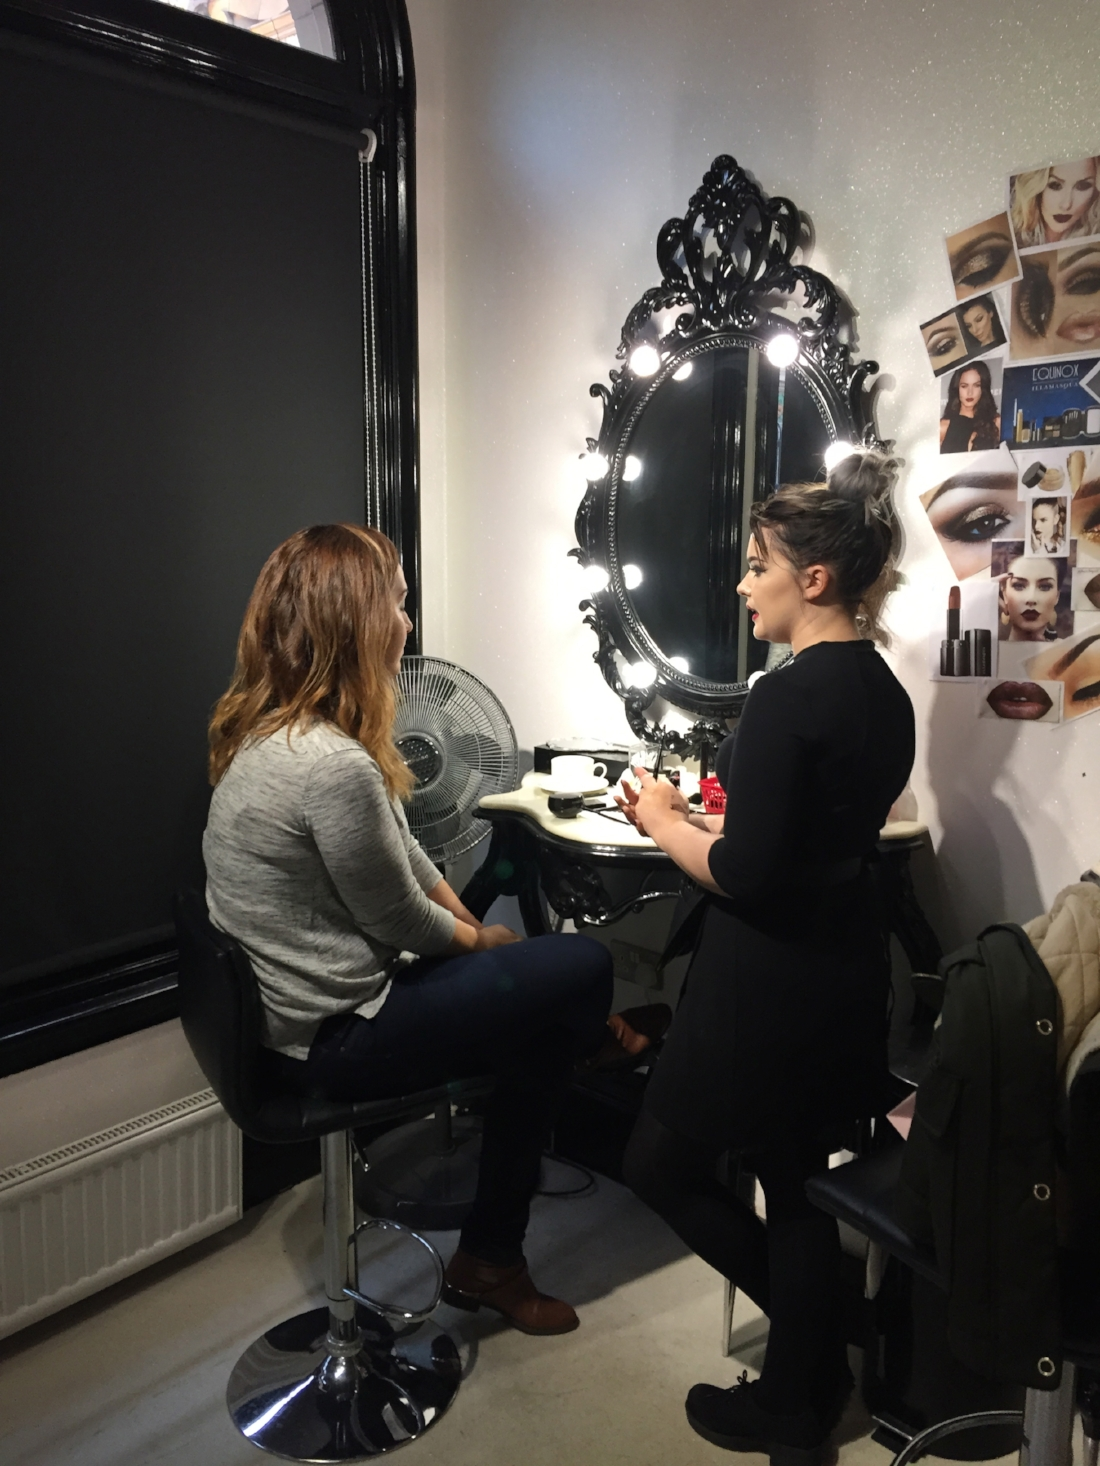 This Pampered Life's Star getting personal Make up tutorials from professional MUA...